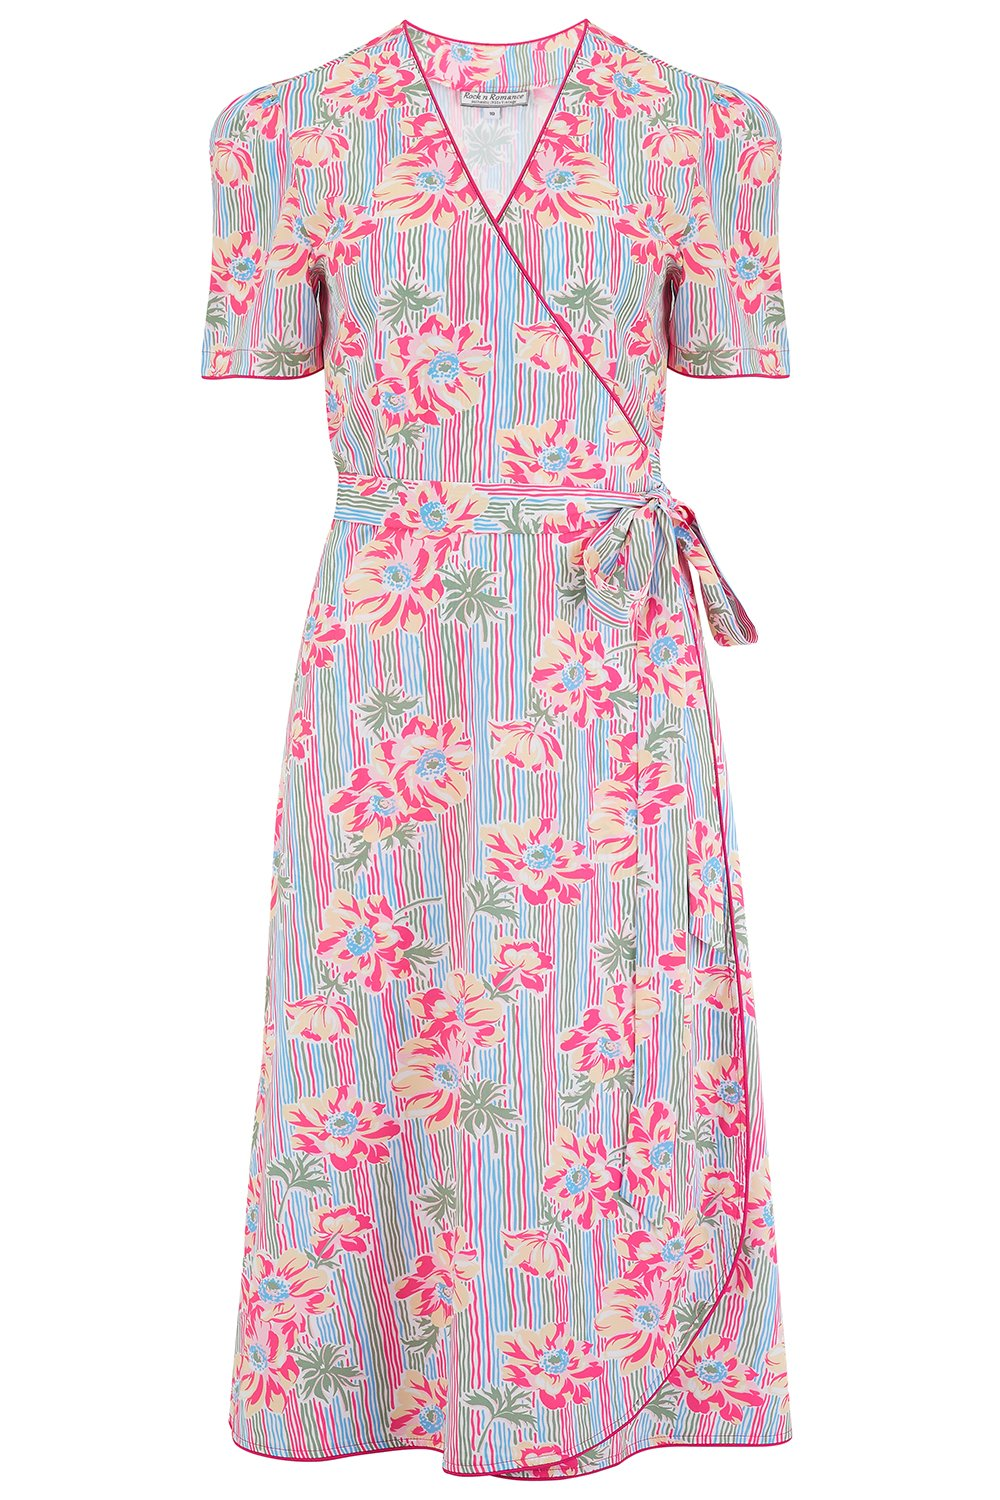 Swing Dance Clothing You Can Dance In Cora Full Wrap Dress in Pacific Garden Print Perfect 1950s Style £49.00 AT vintagedancer.com